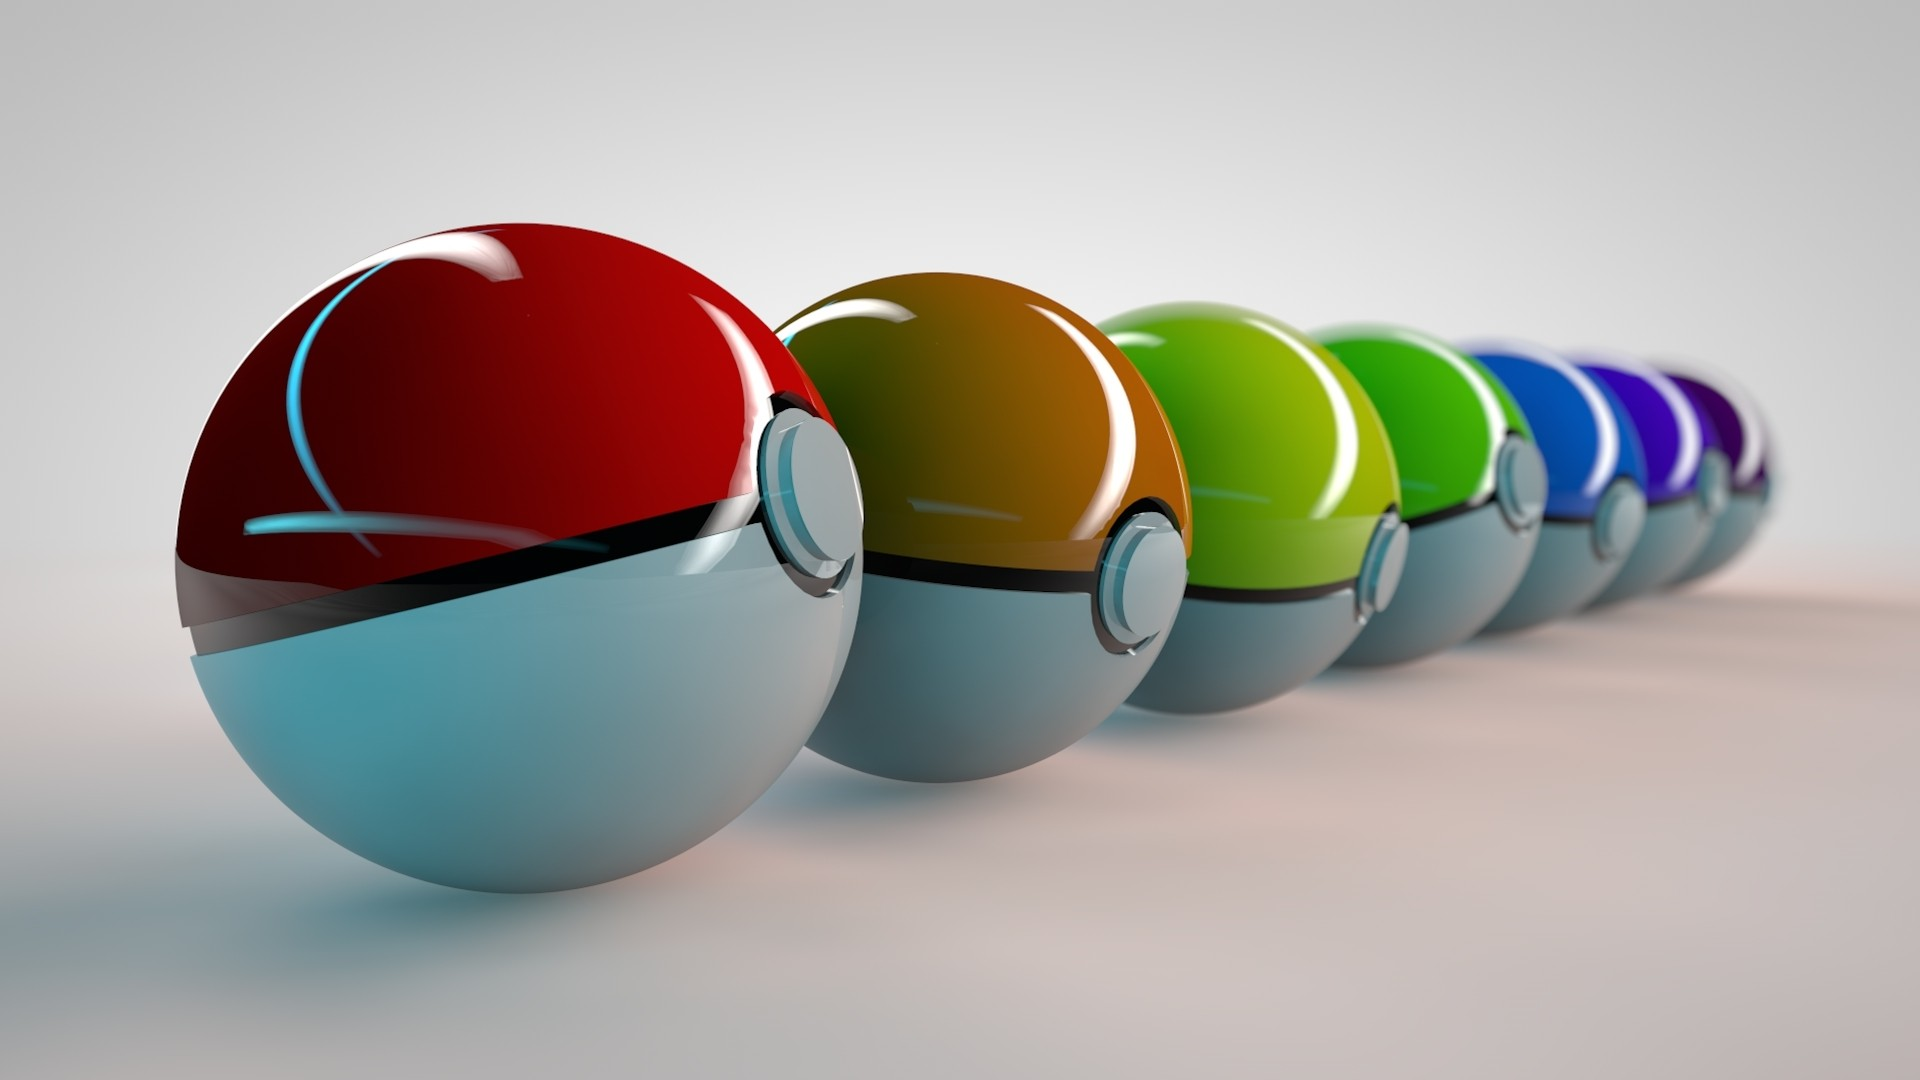 Ball Pokeball Wallpapers HD Wallpaper Pokemon Ball Pokeball Wallpapers 1920x1080